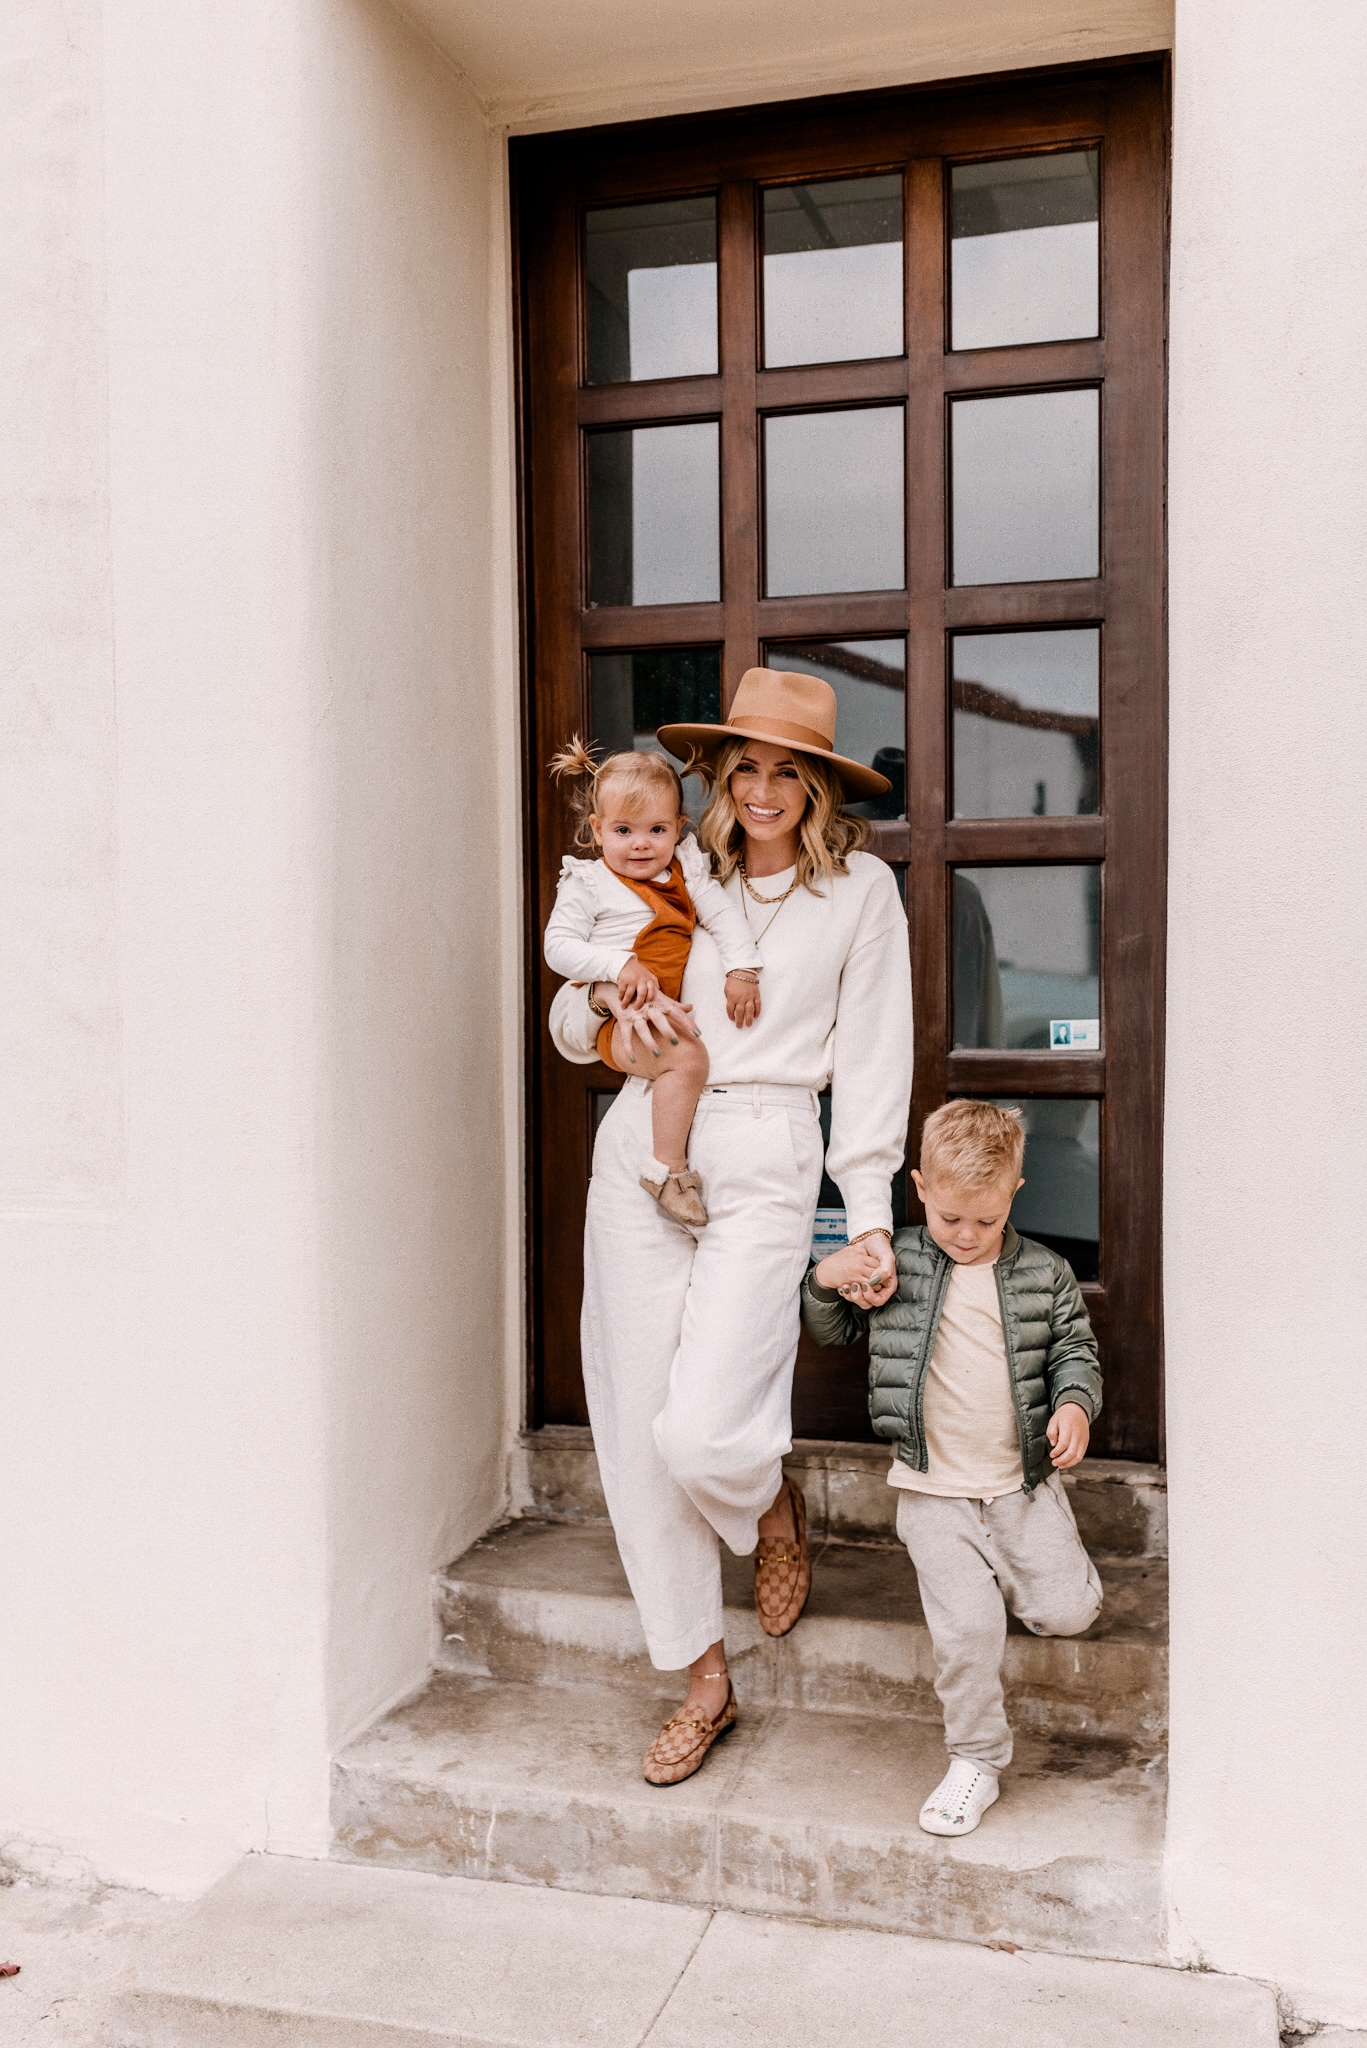 Fall fedora Hats | Fedora Hats by popular San Diego fashion blog, Navy Grace: image of a mom outside with her two children and wearing a Madewell Brushed Knit Puff-Sleeve Top, Everlane The Arc Canvas Pant,Gucci Women's Jordaan GG Canvas Loafers and Free People Rancher Felt Hat.